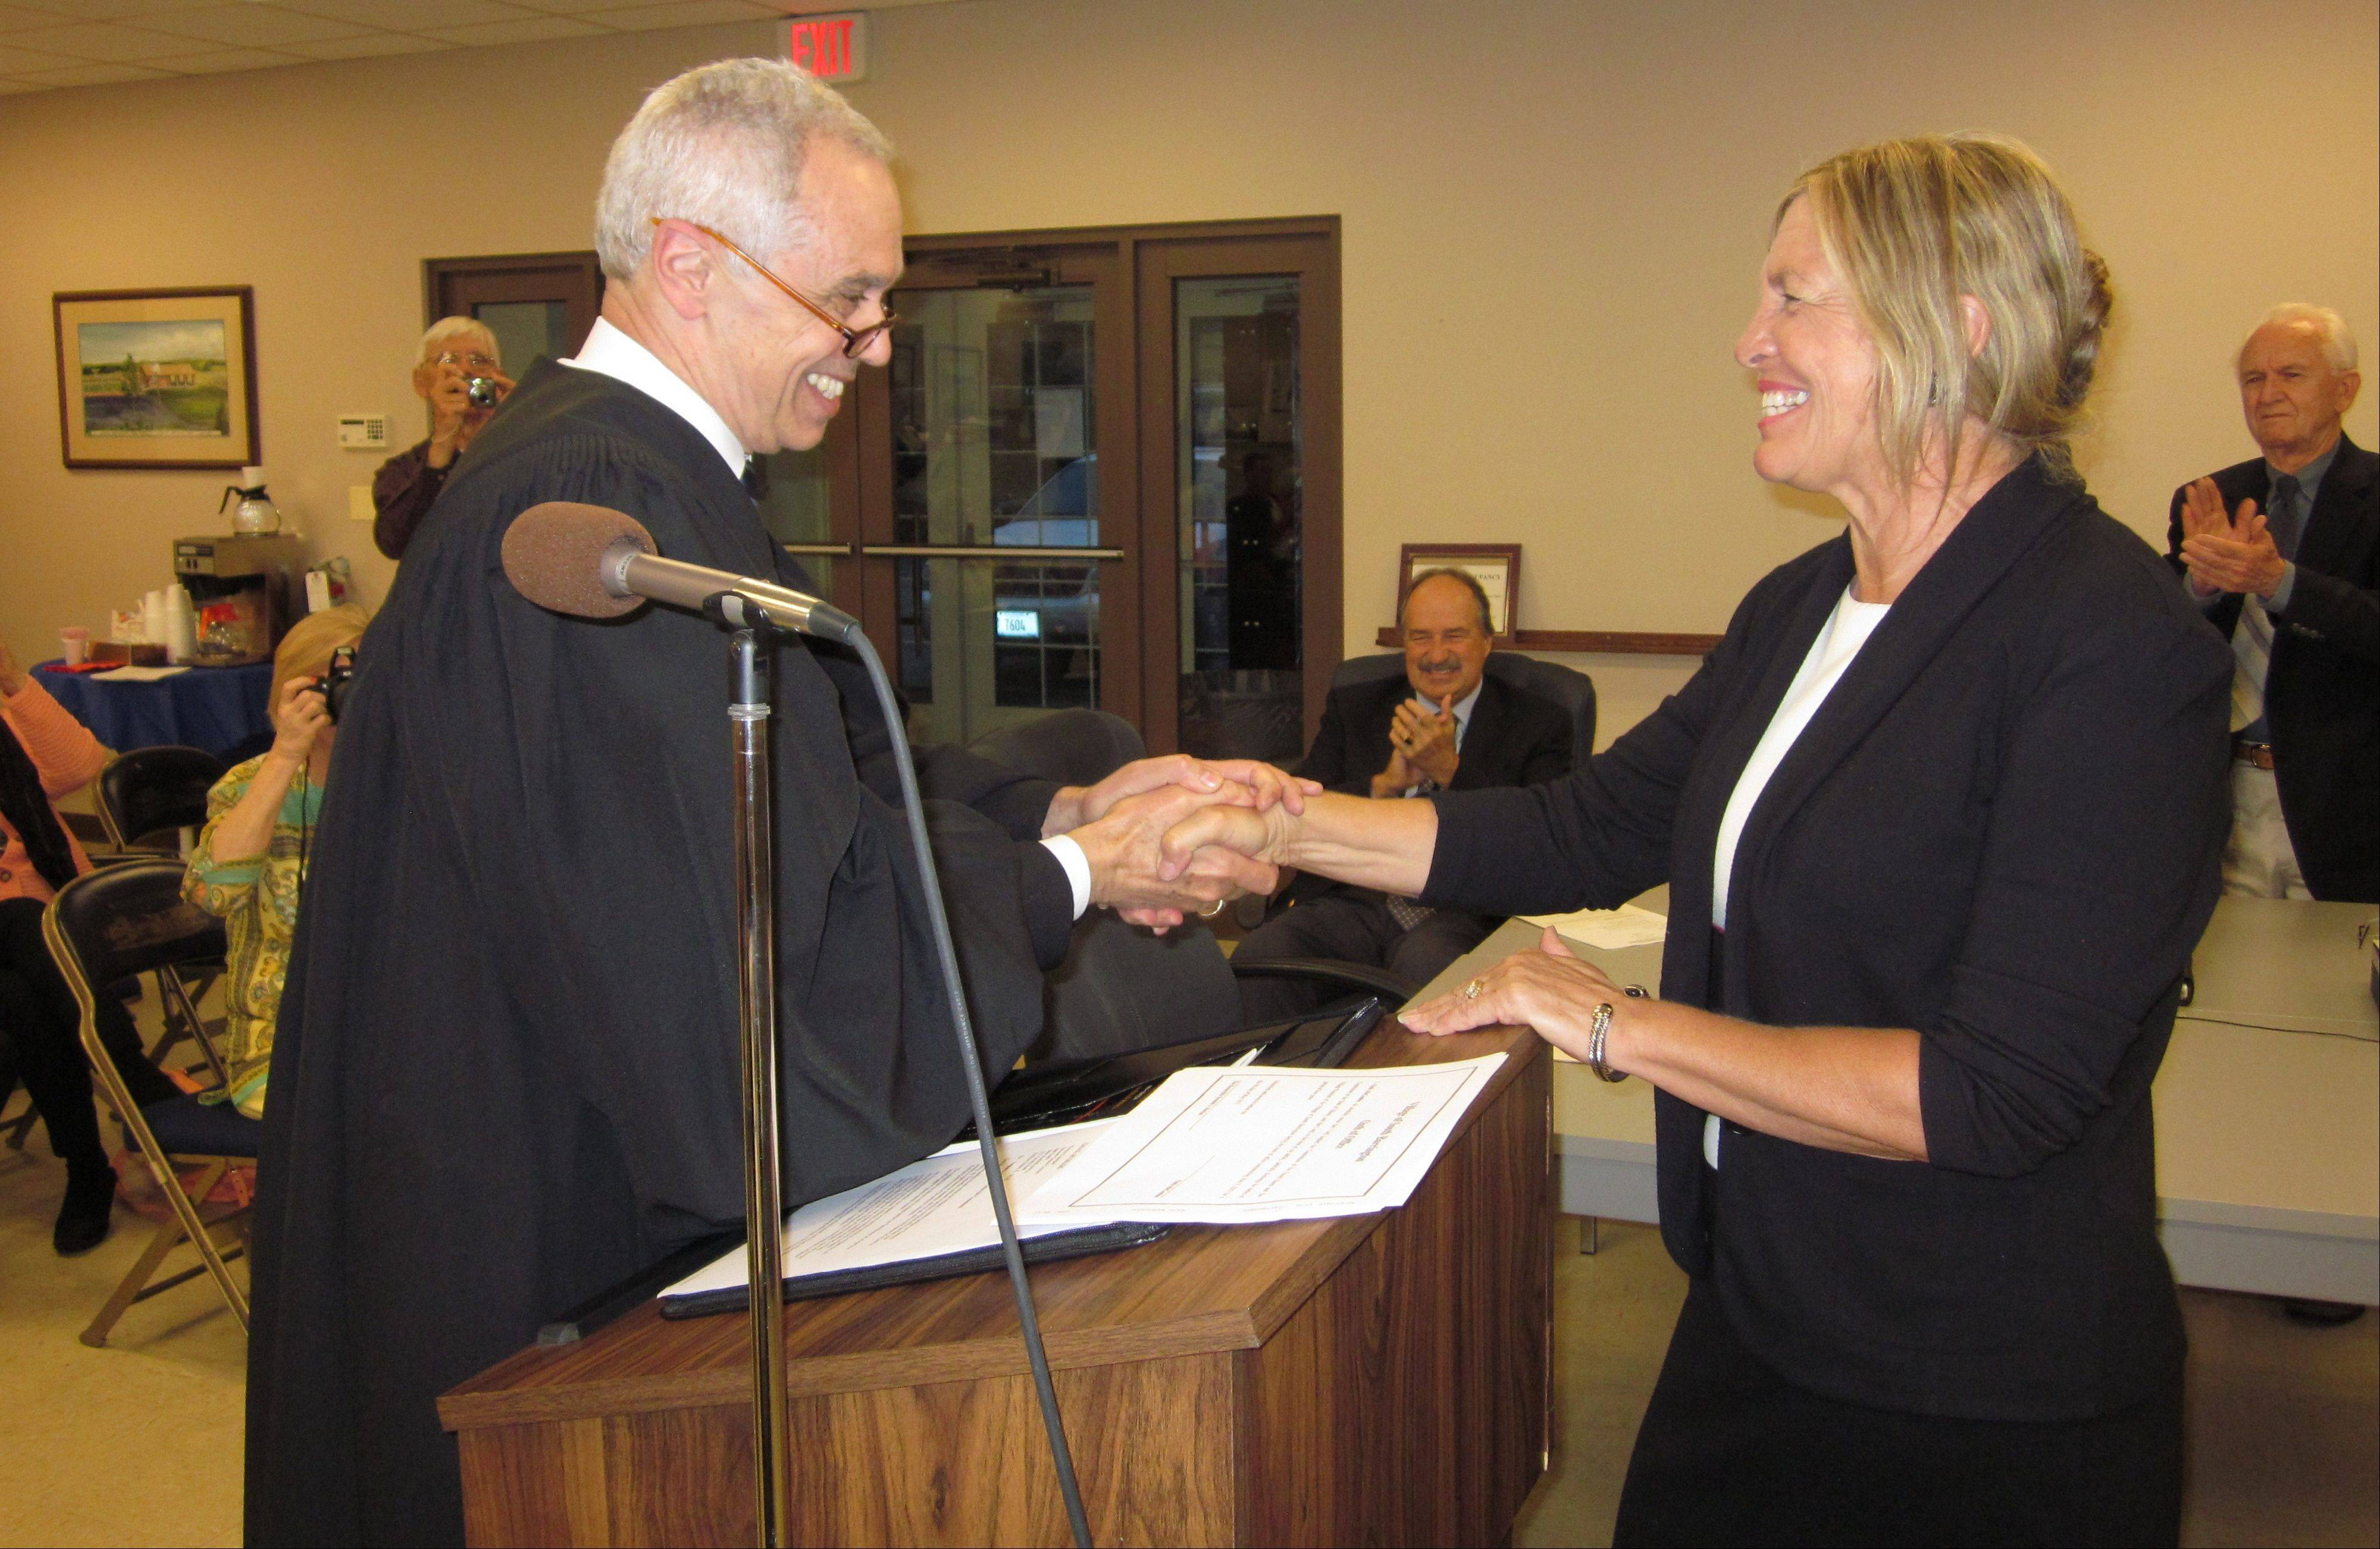 South Barrington Village Attorney Don Storino, who also serves as a judge with the Illinois Court of Claims, congratulates new South Barrington Village President Paula McCombie after she took her oath of office Thursday.